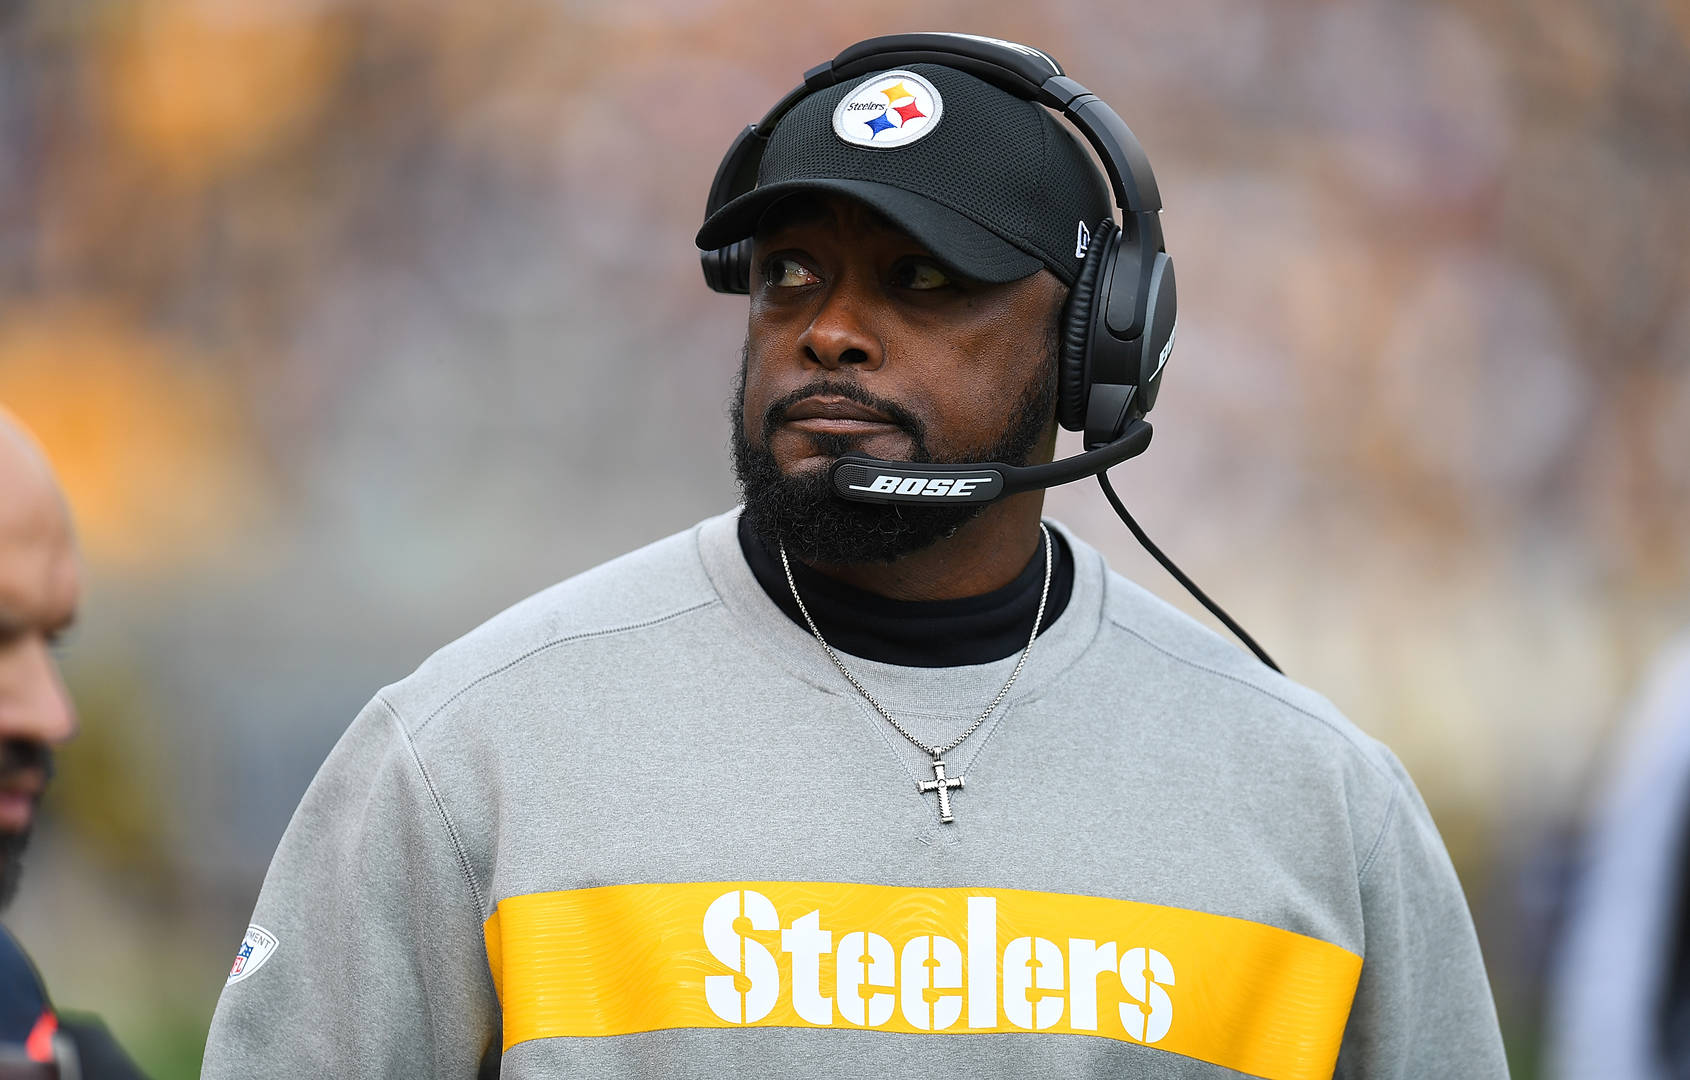 Steelers Head Coach Mike Tomlin On NFL Season's Future